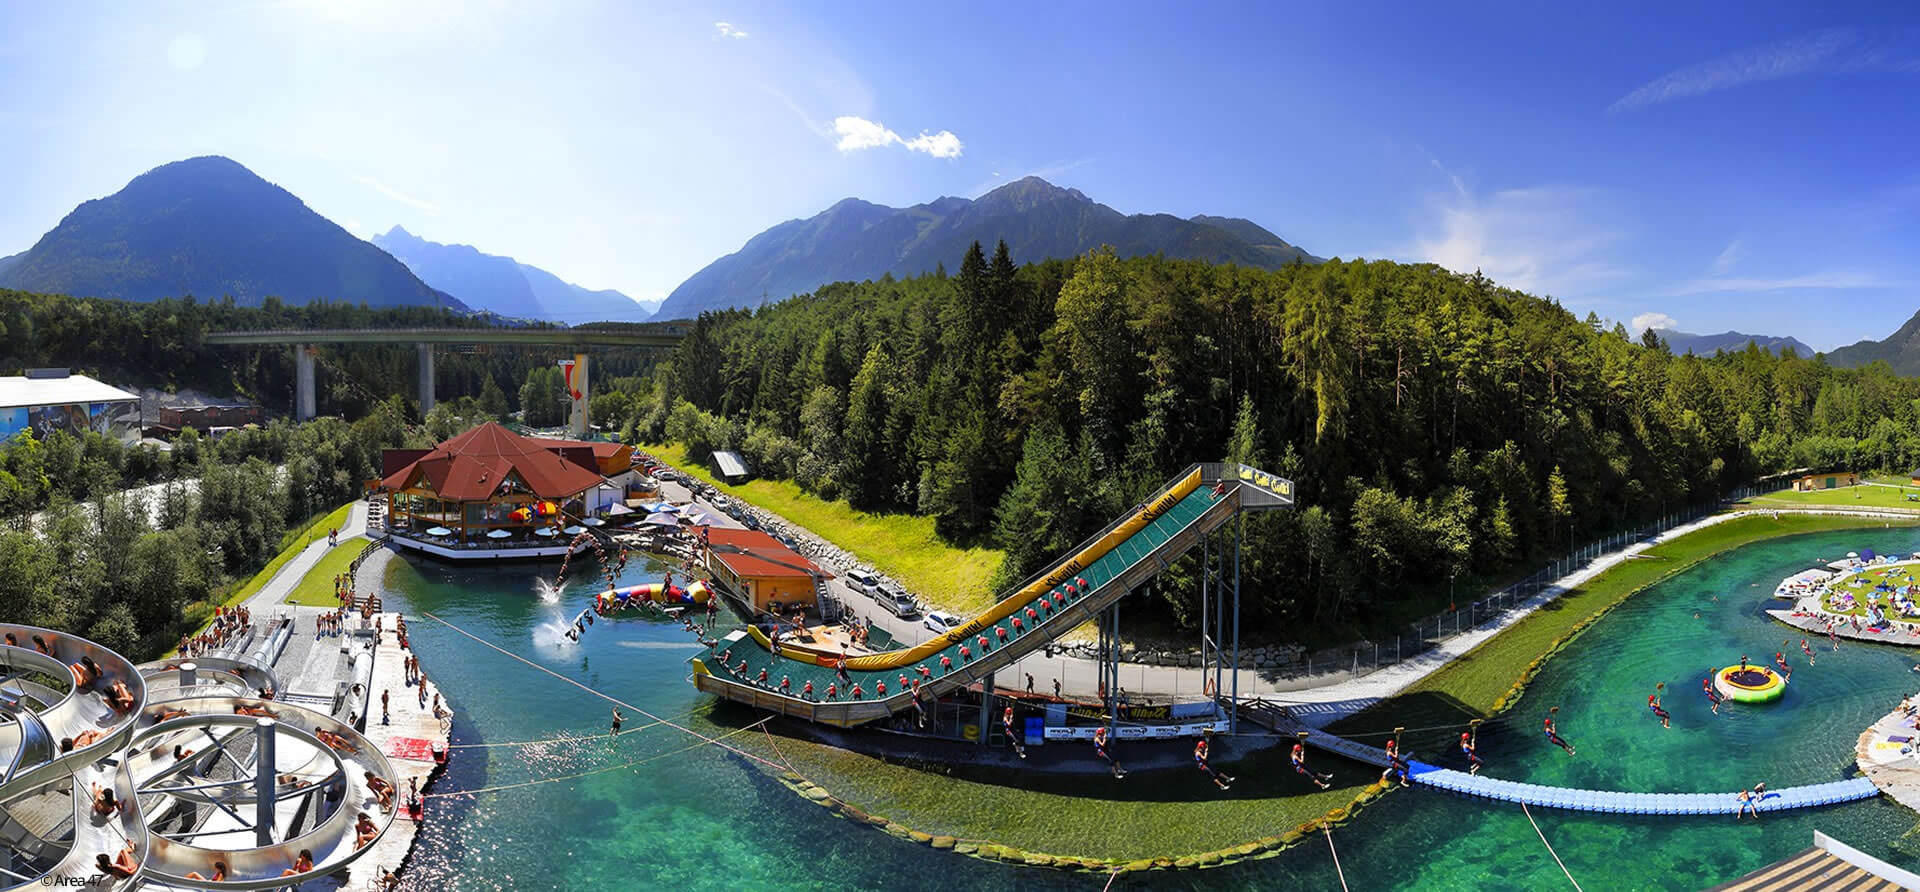 The Adventure Park in Upper Tyrol owes its name to the 47th line of latitude. Here children and adults can find action without end.